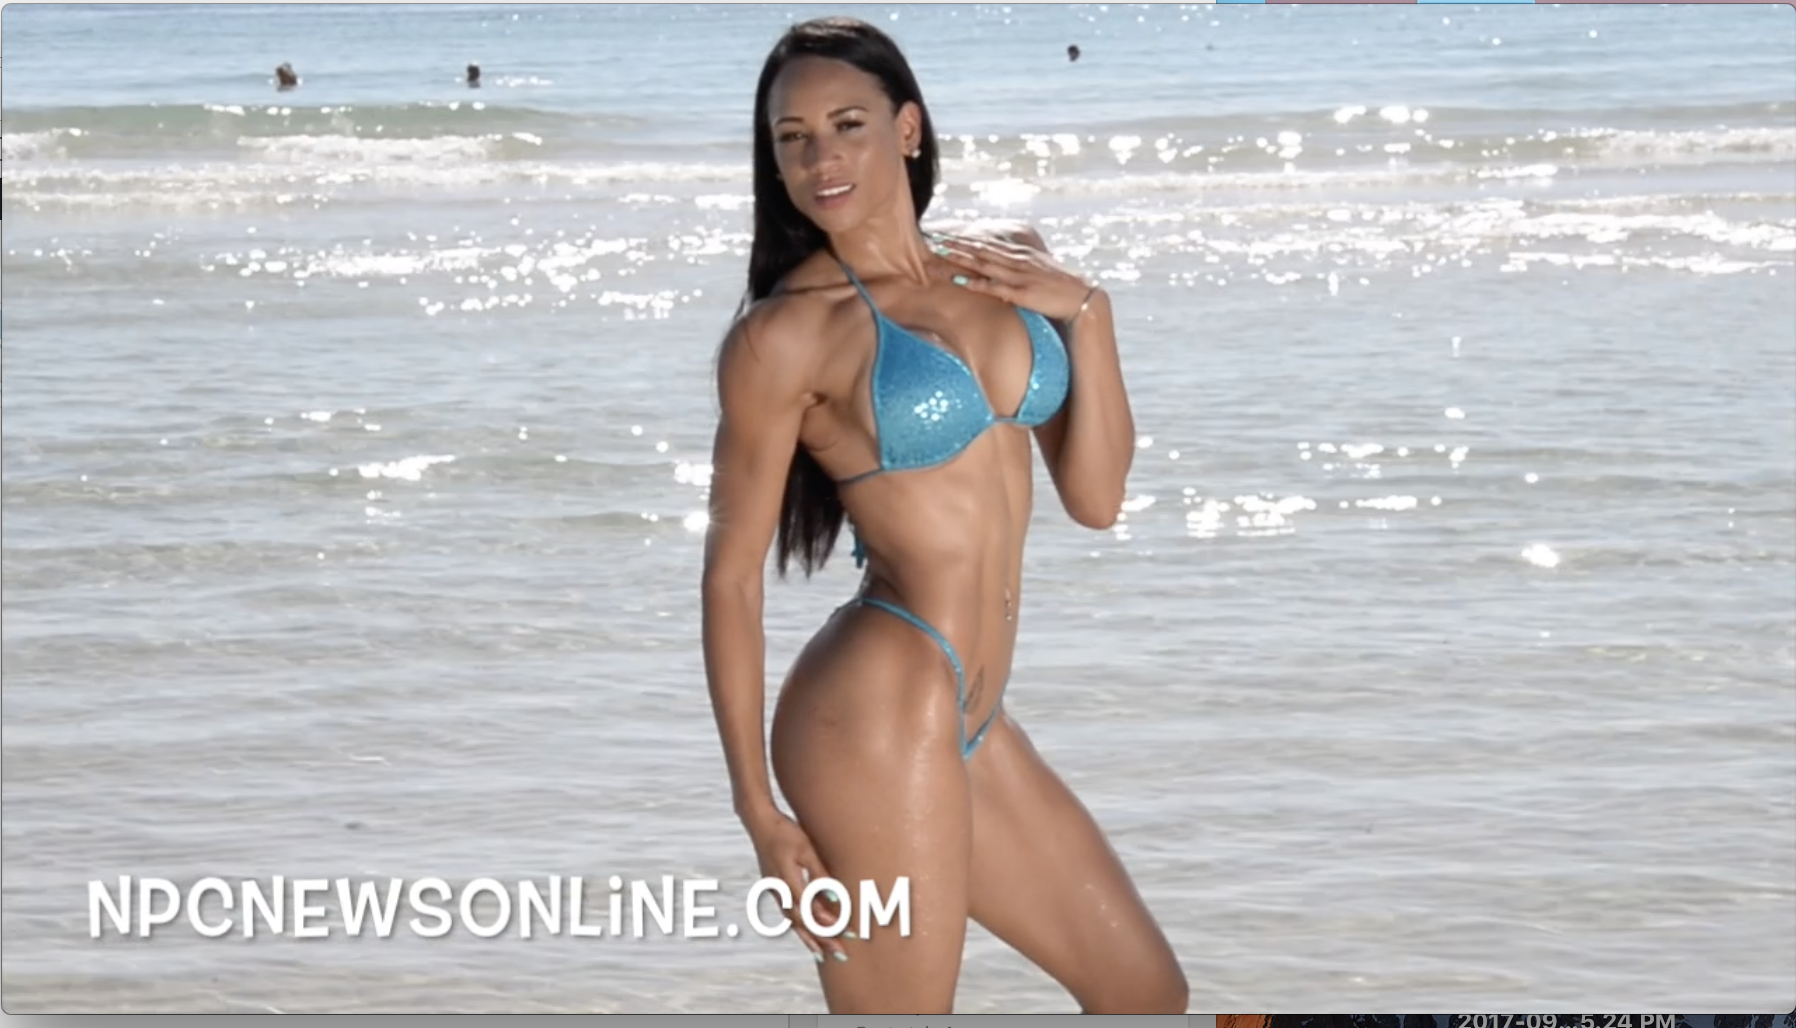 J.M. Manion South Beach Miami Shoot: Behind The Scenes Video With  IFBB Bikini Pro Asia Mendoza